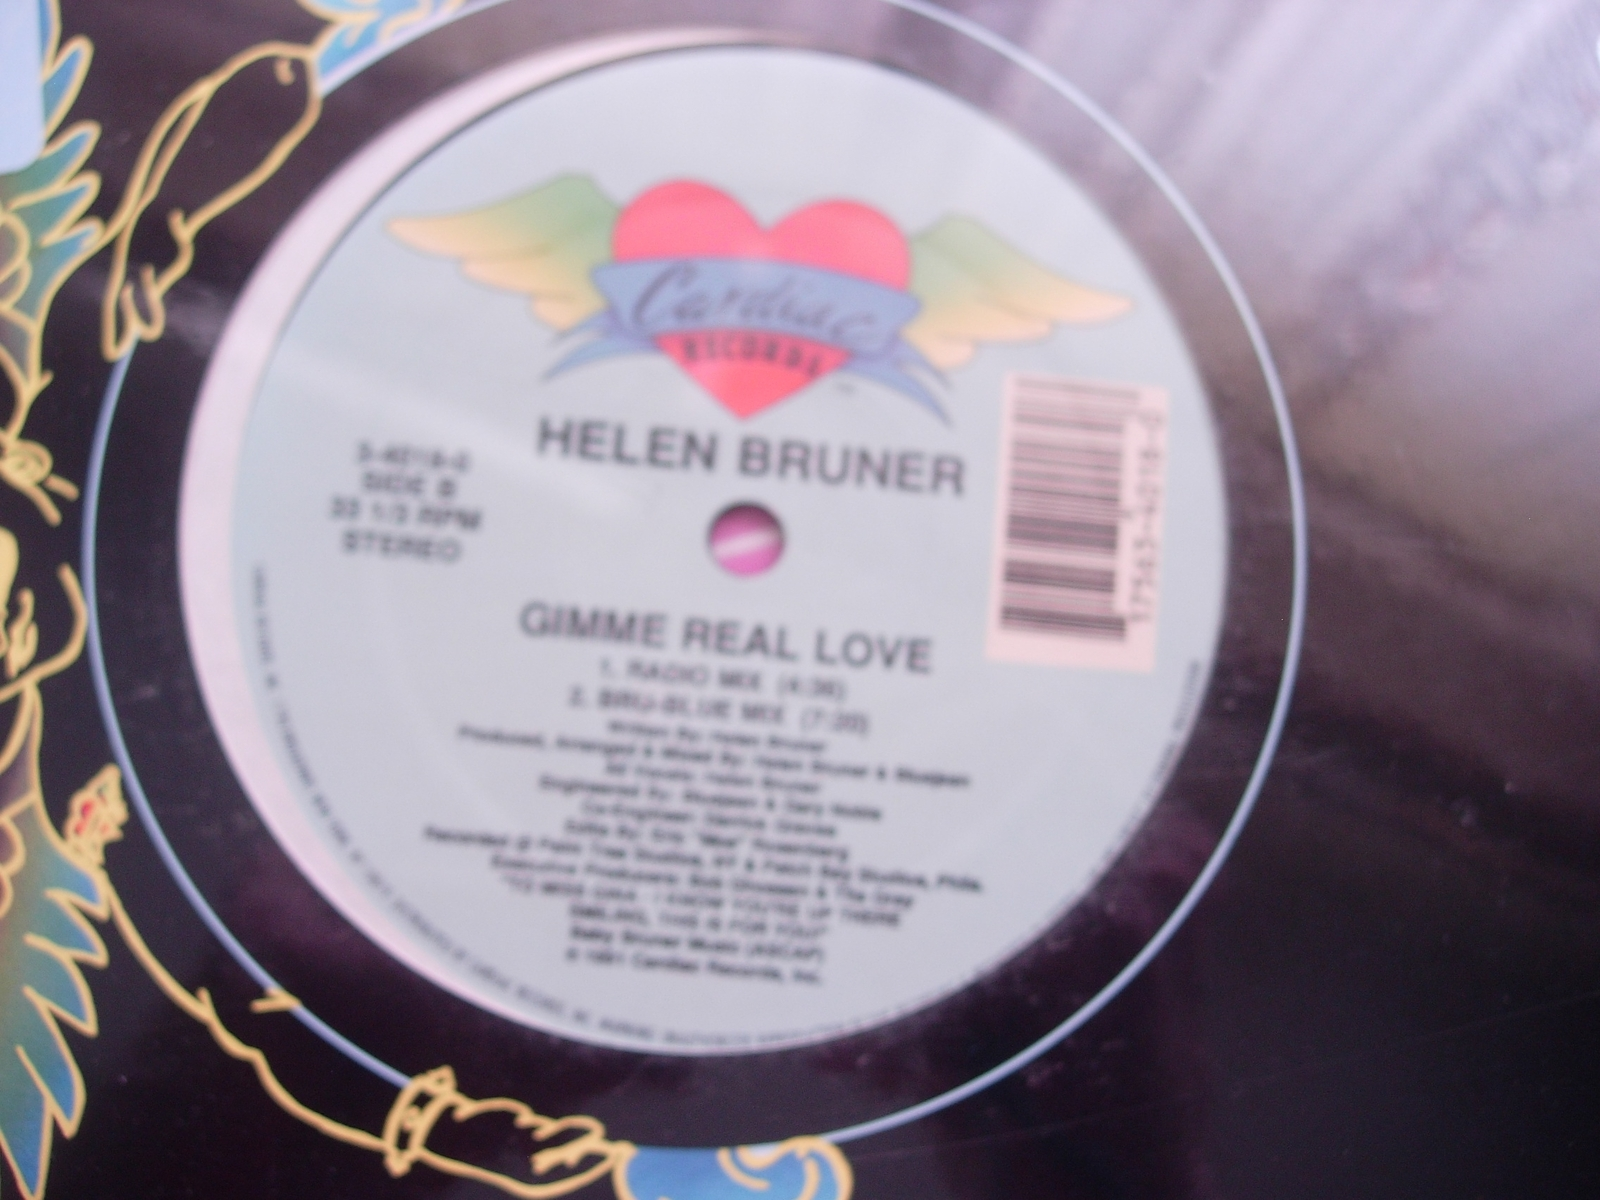 Helen Bruner - Gimme Real Love - Cardiac Records 3-4018-0 - SEALED